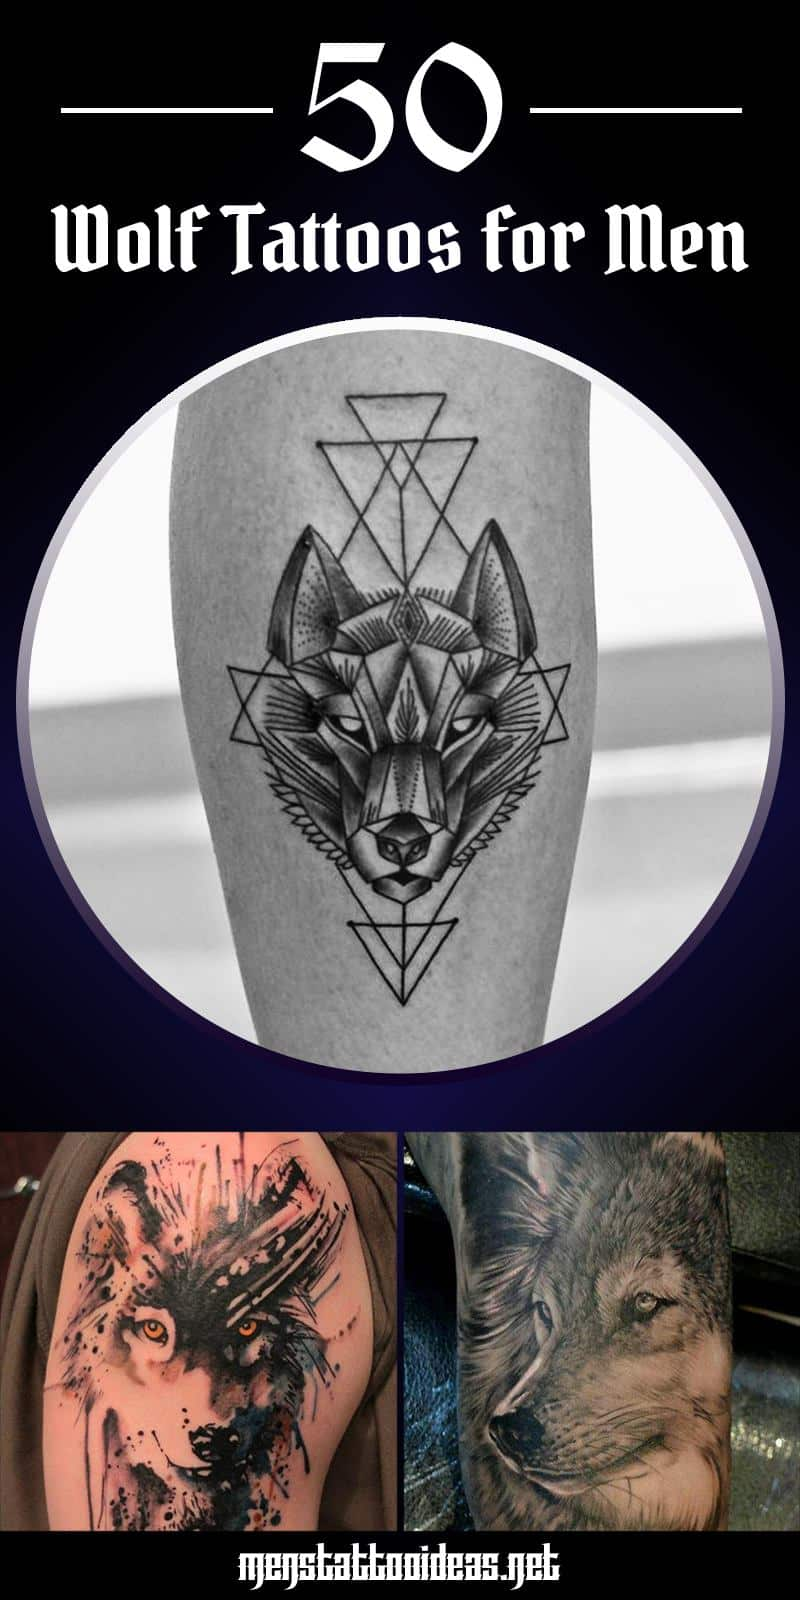 eb9fa4f2bc156 Wolf Tattoos for Men - Ideas and Inspiration for guys